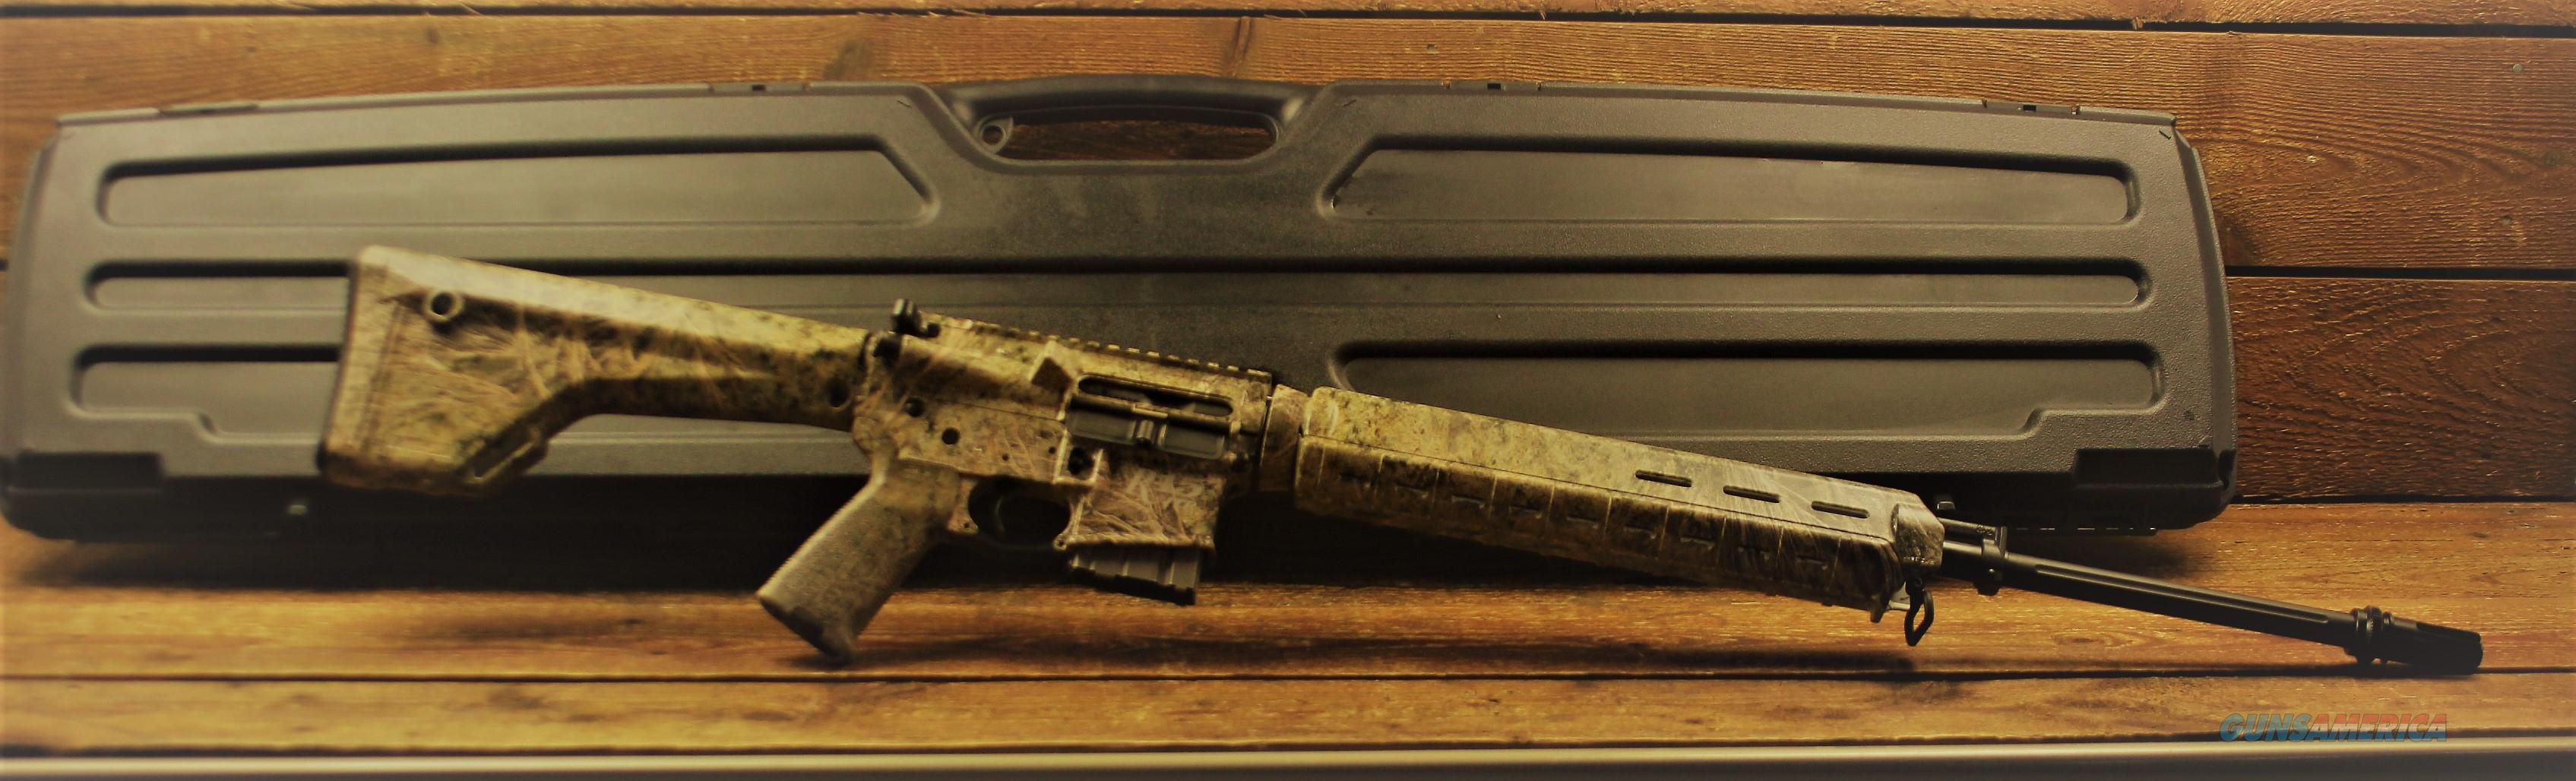 $83 DOWN EASY PAY  LAYAWAY  Remington  Hunting Mossy Oak  camouflage compact  R15 VTR AR-15 AR15 Predator upgraded Magpul  pistol grip MOE Target shooting  5.56 NATO chamber .223 Rem Aluminum receiver  Accessory rails CAMO 60011 R-15   Guns > Rifles > Remington Rifles - Modern > AR-15 Platform